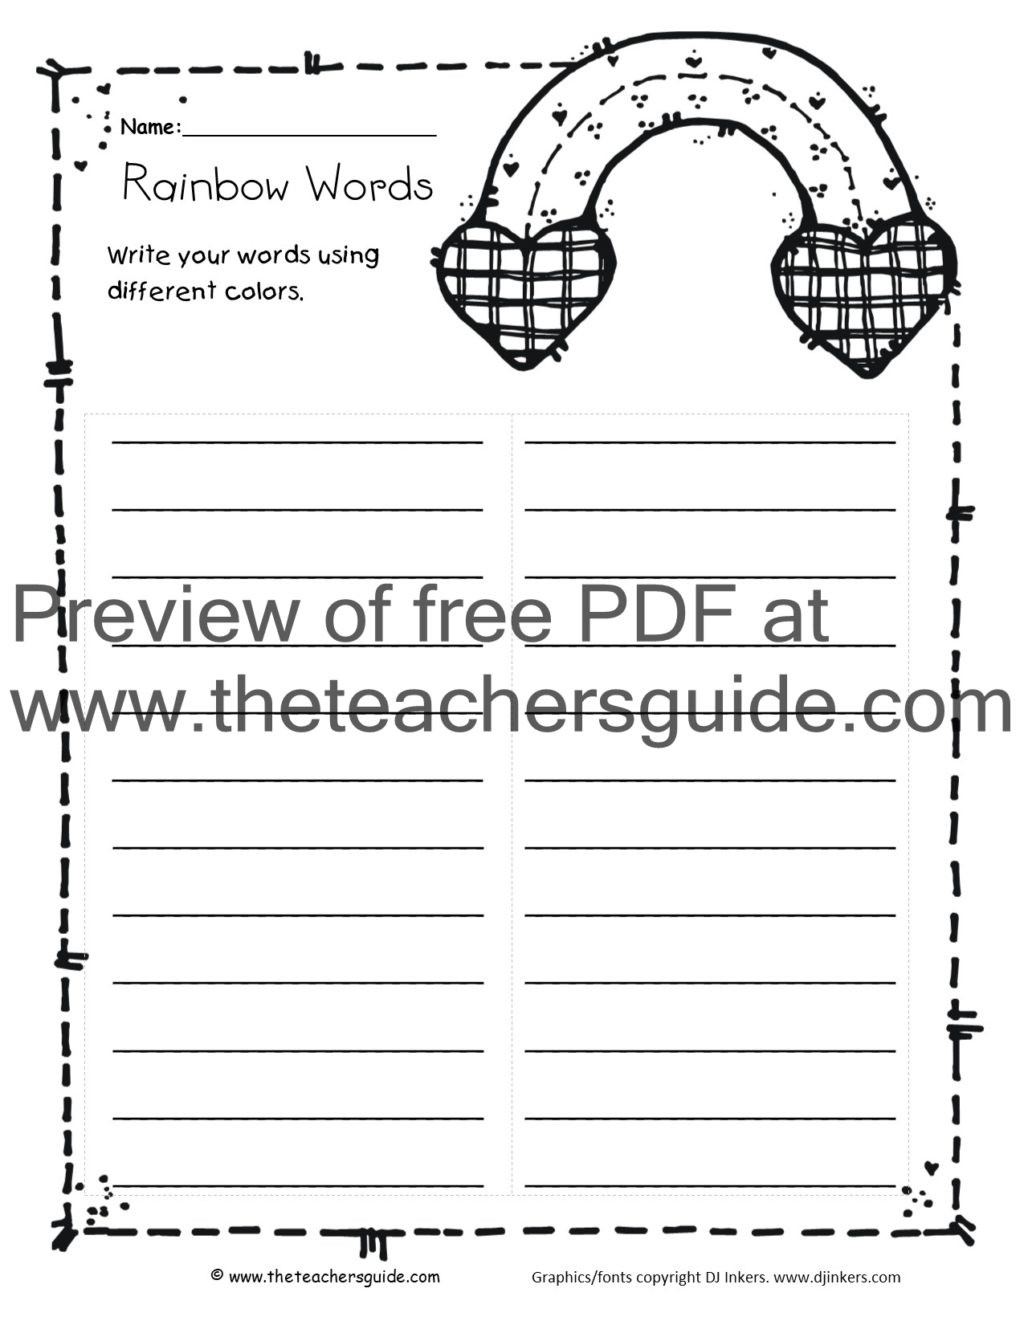 Rainbow Worksheets Preschool Worksheet Fantastic My Classroom Worksheets for